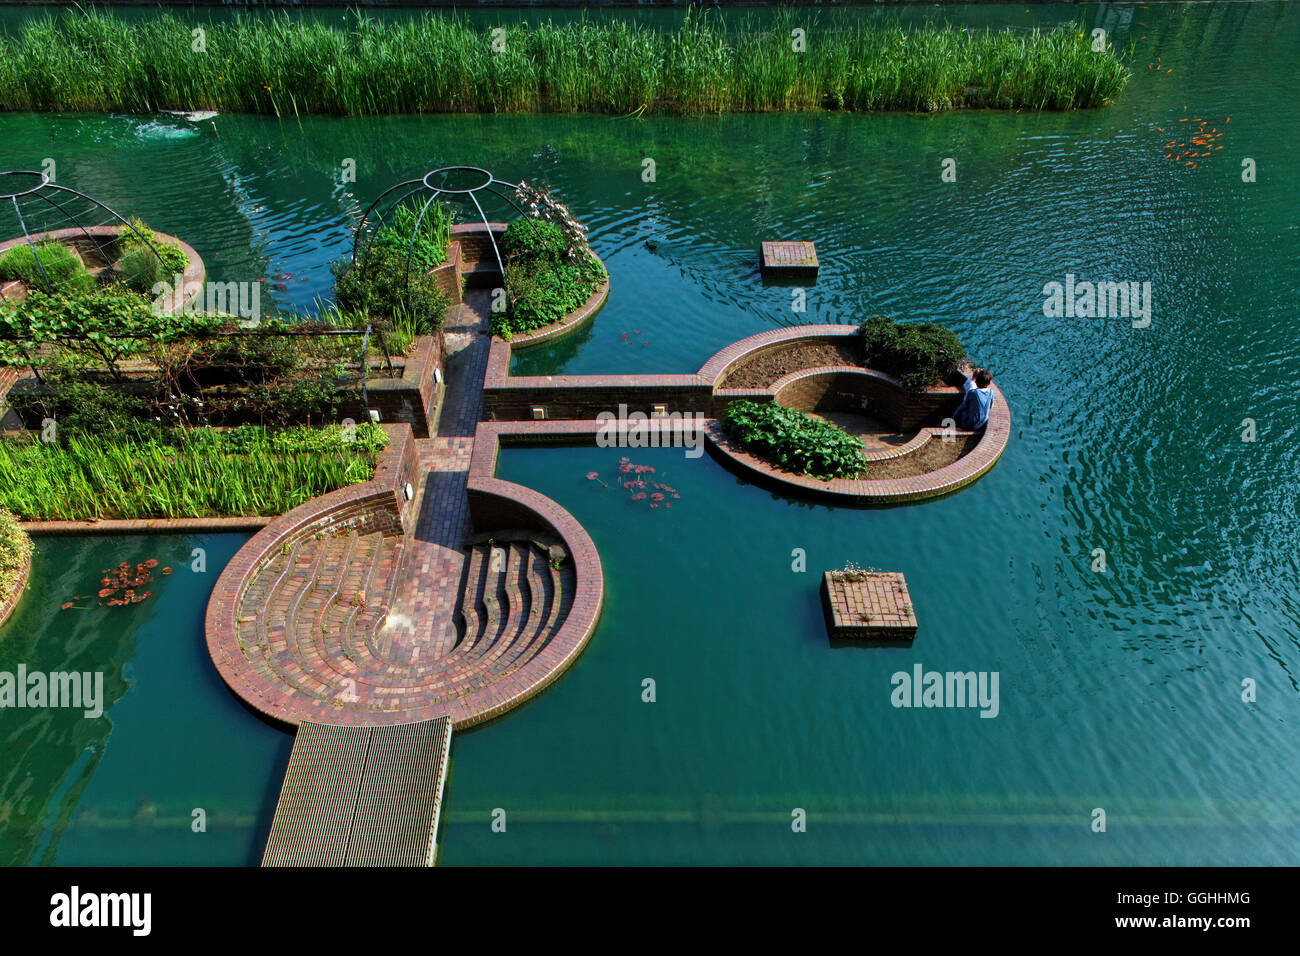 Garden with sitting areas below water level in the Barbican centre, London, England, United Kingdom - Stock Image